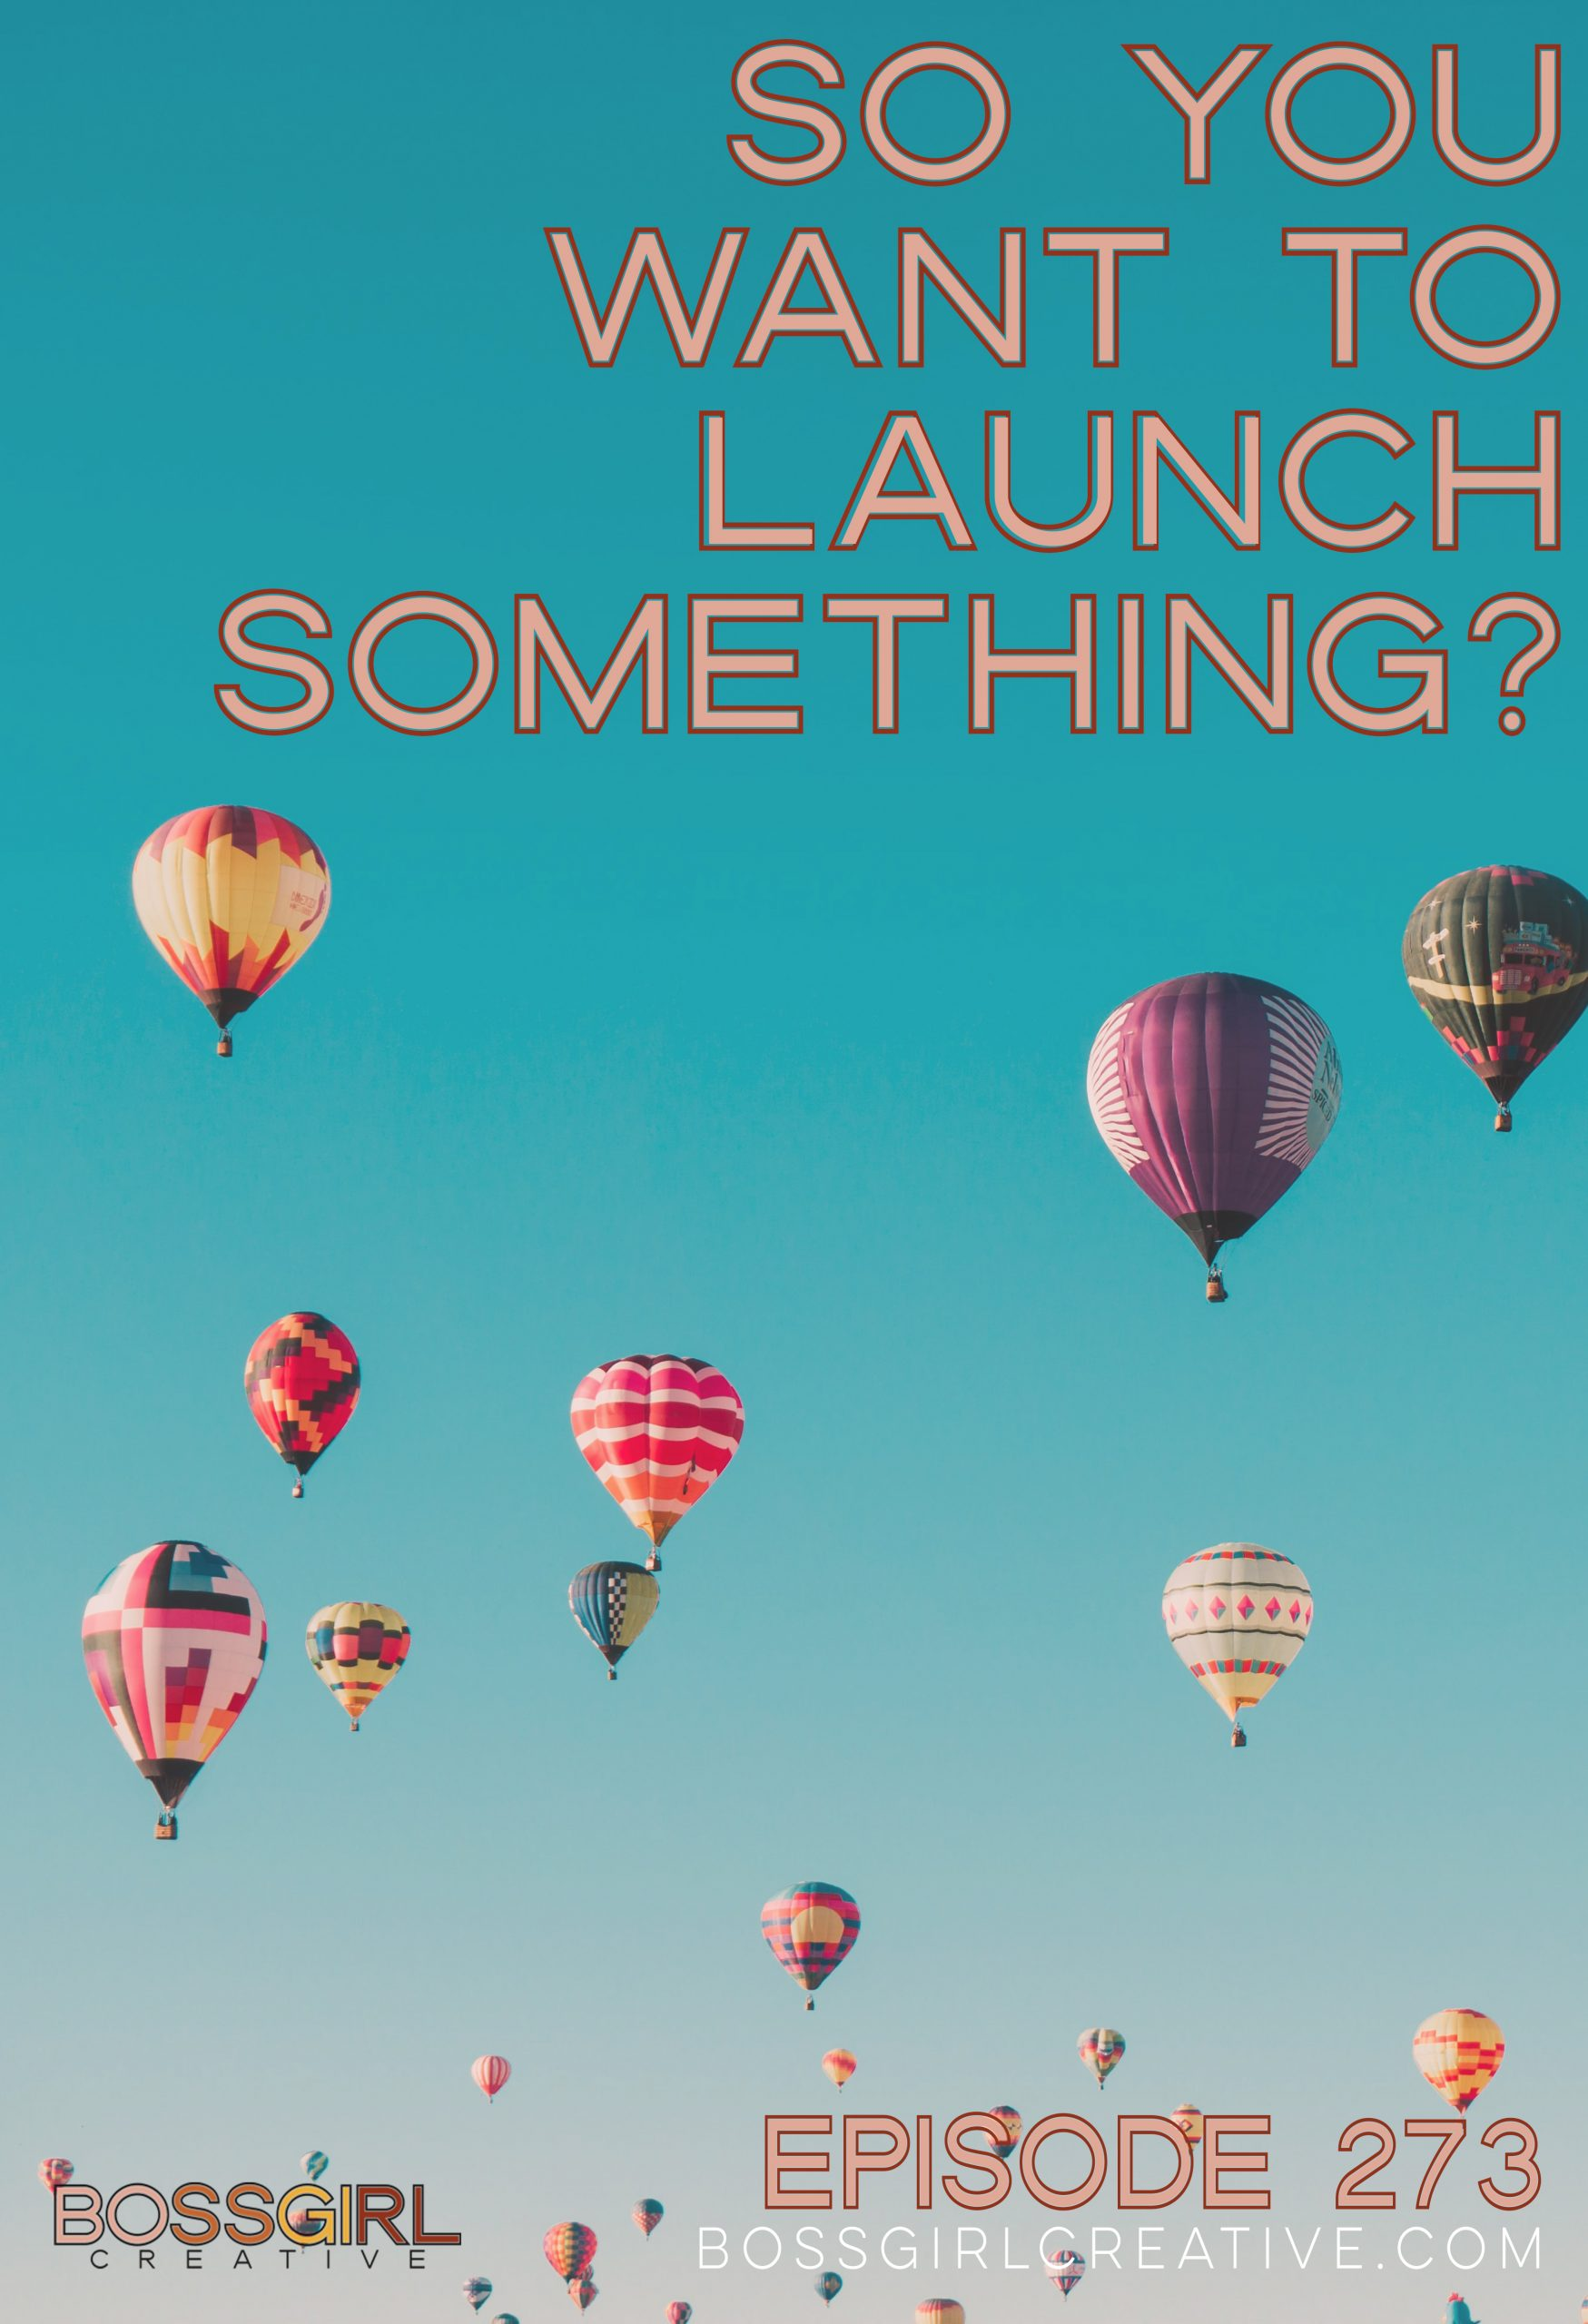 Boss Girl Creative Episode 273 - So You Want to Launch Something?